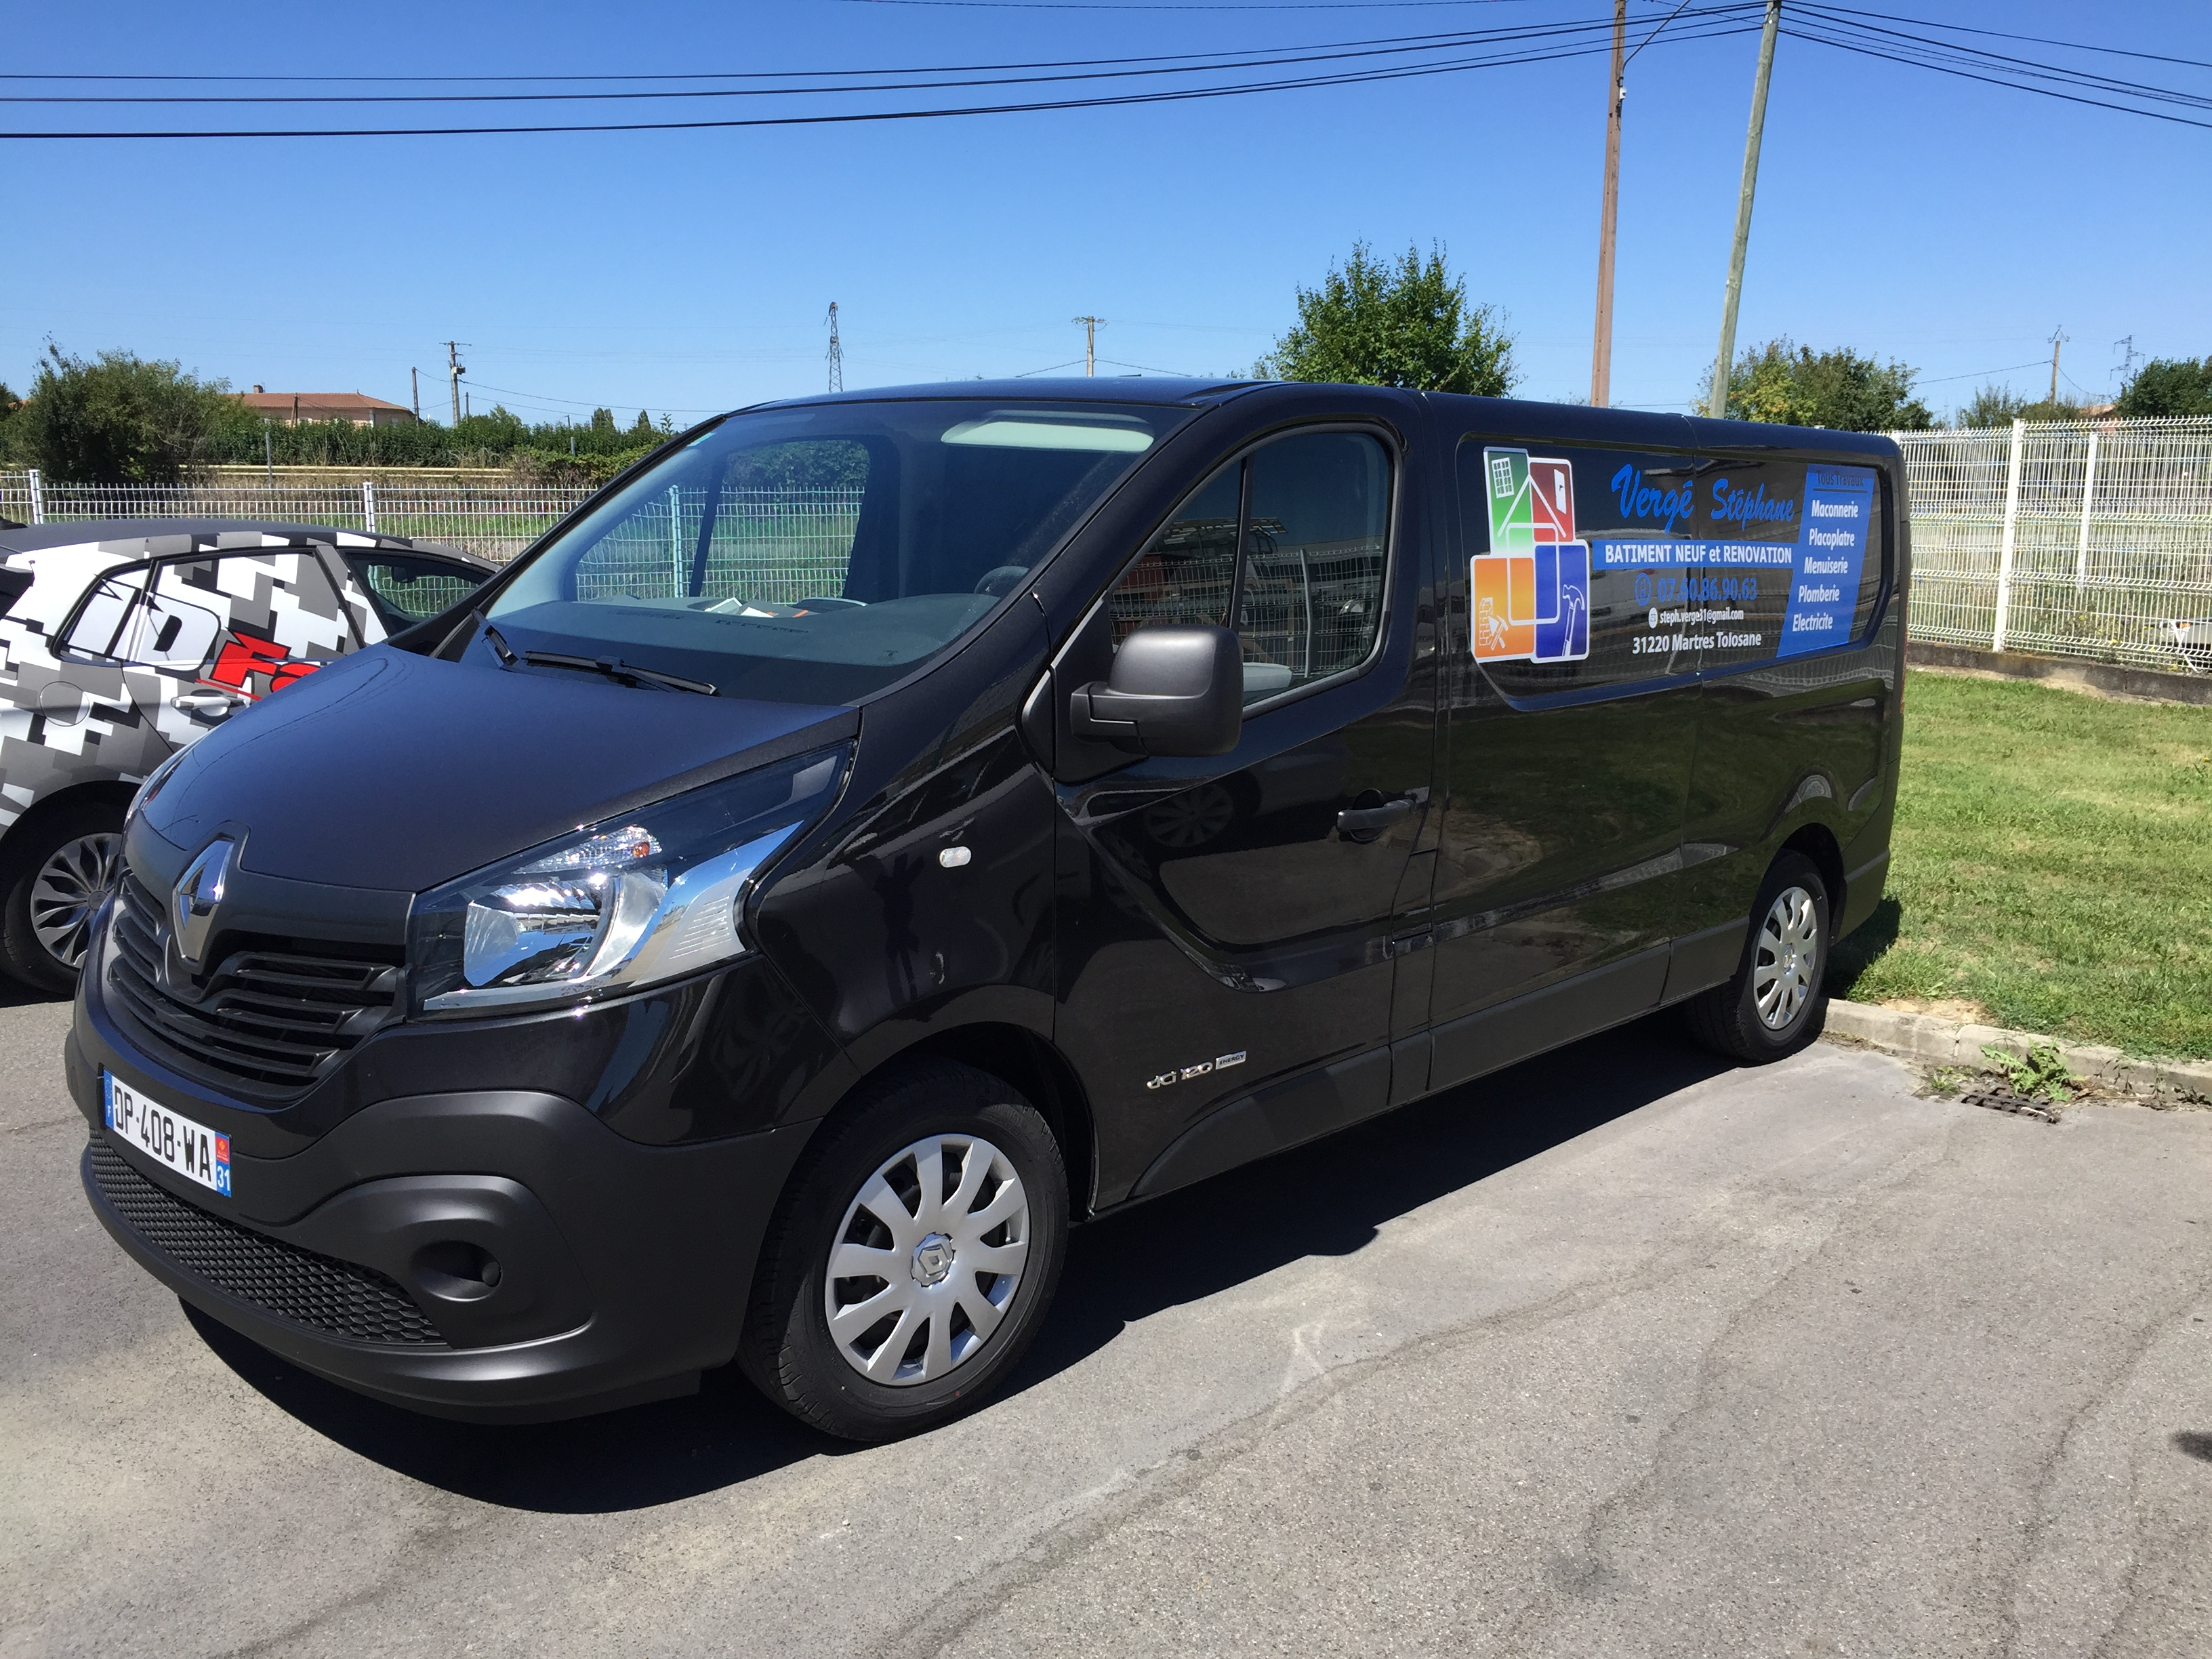 marquage camion renault trafic 2015 entrep verg st phane id factory impression num rique. Black Bedroom Furniture Sets. Home Design Ideas